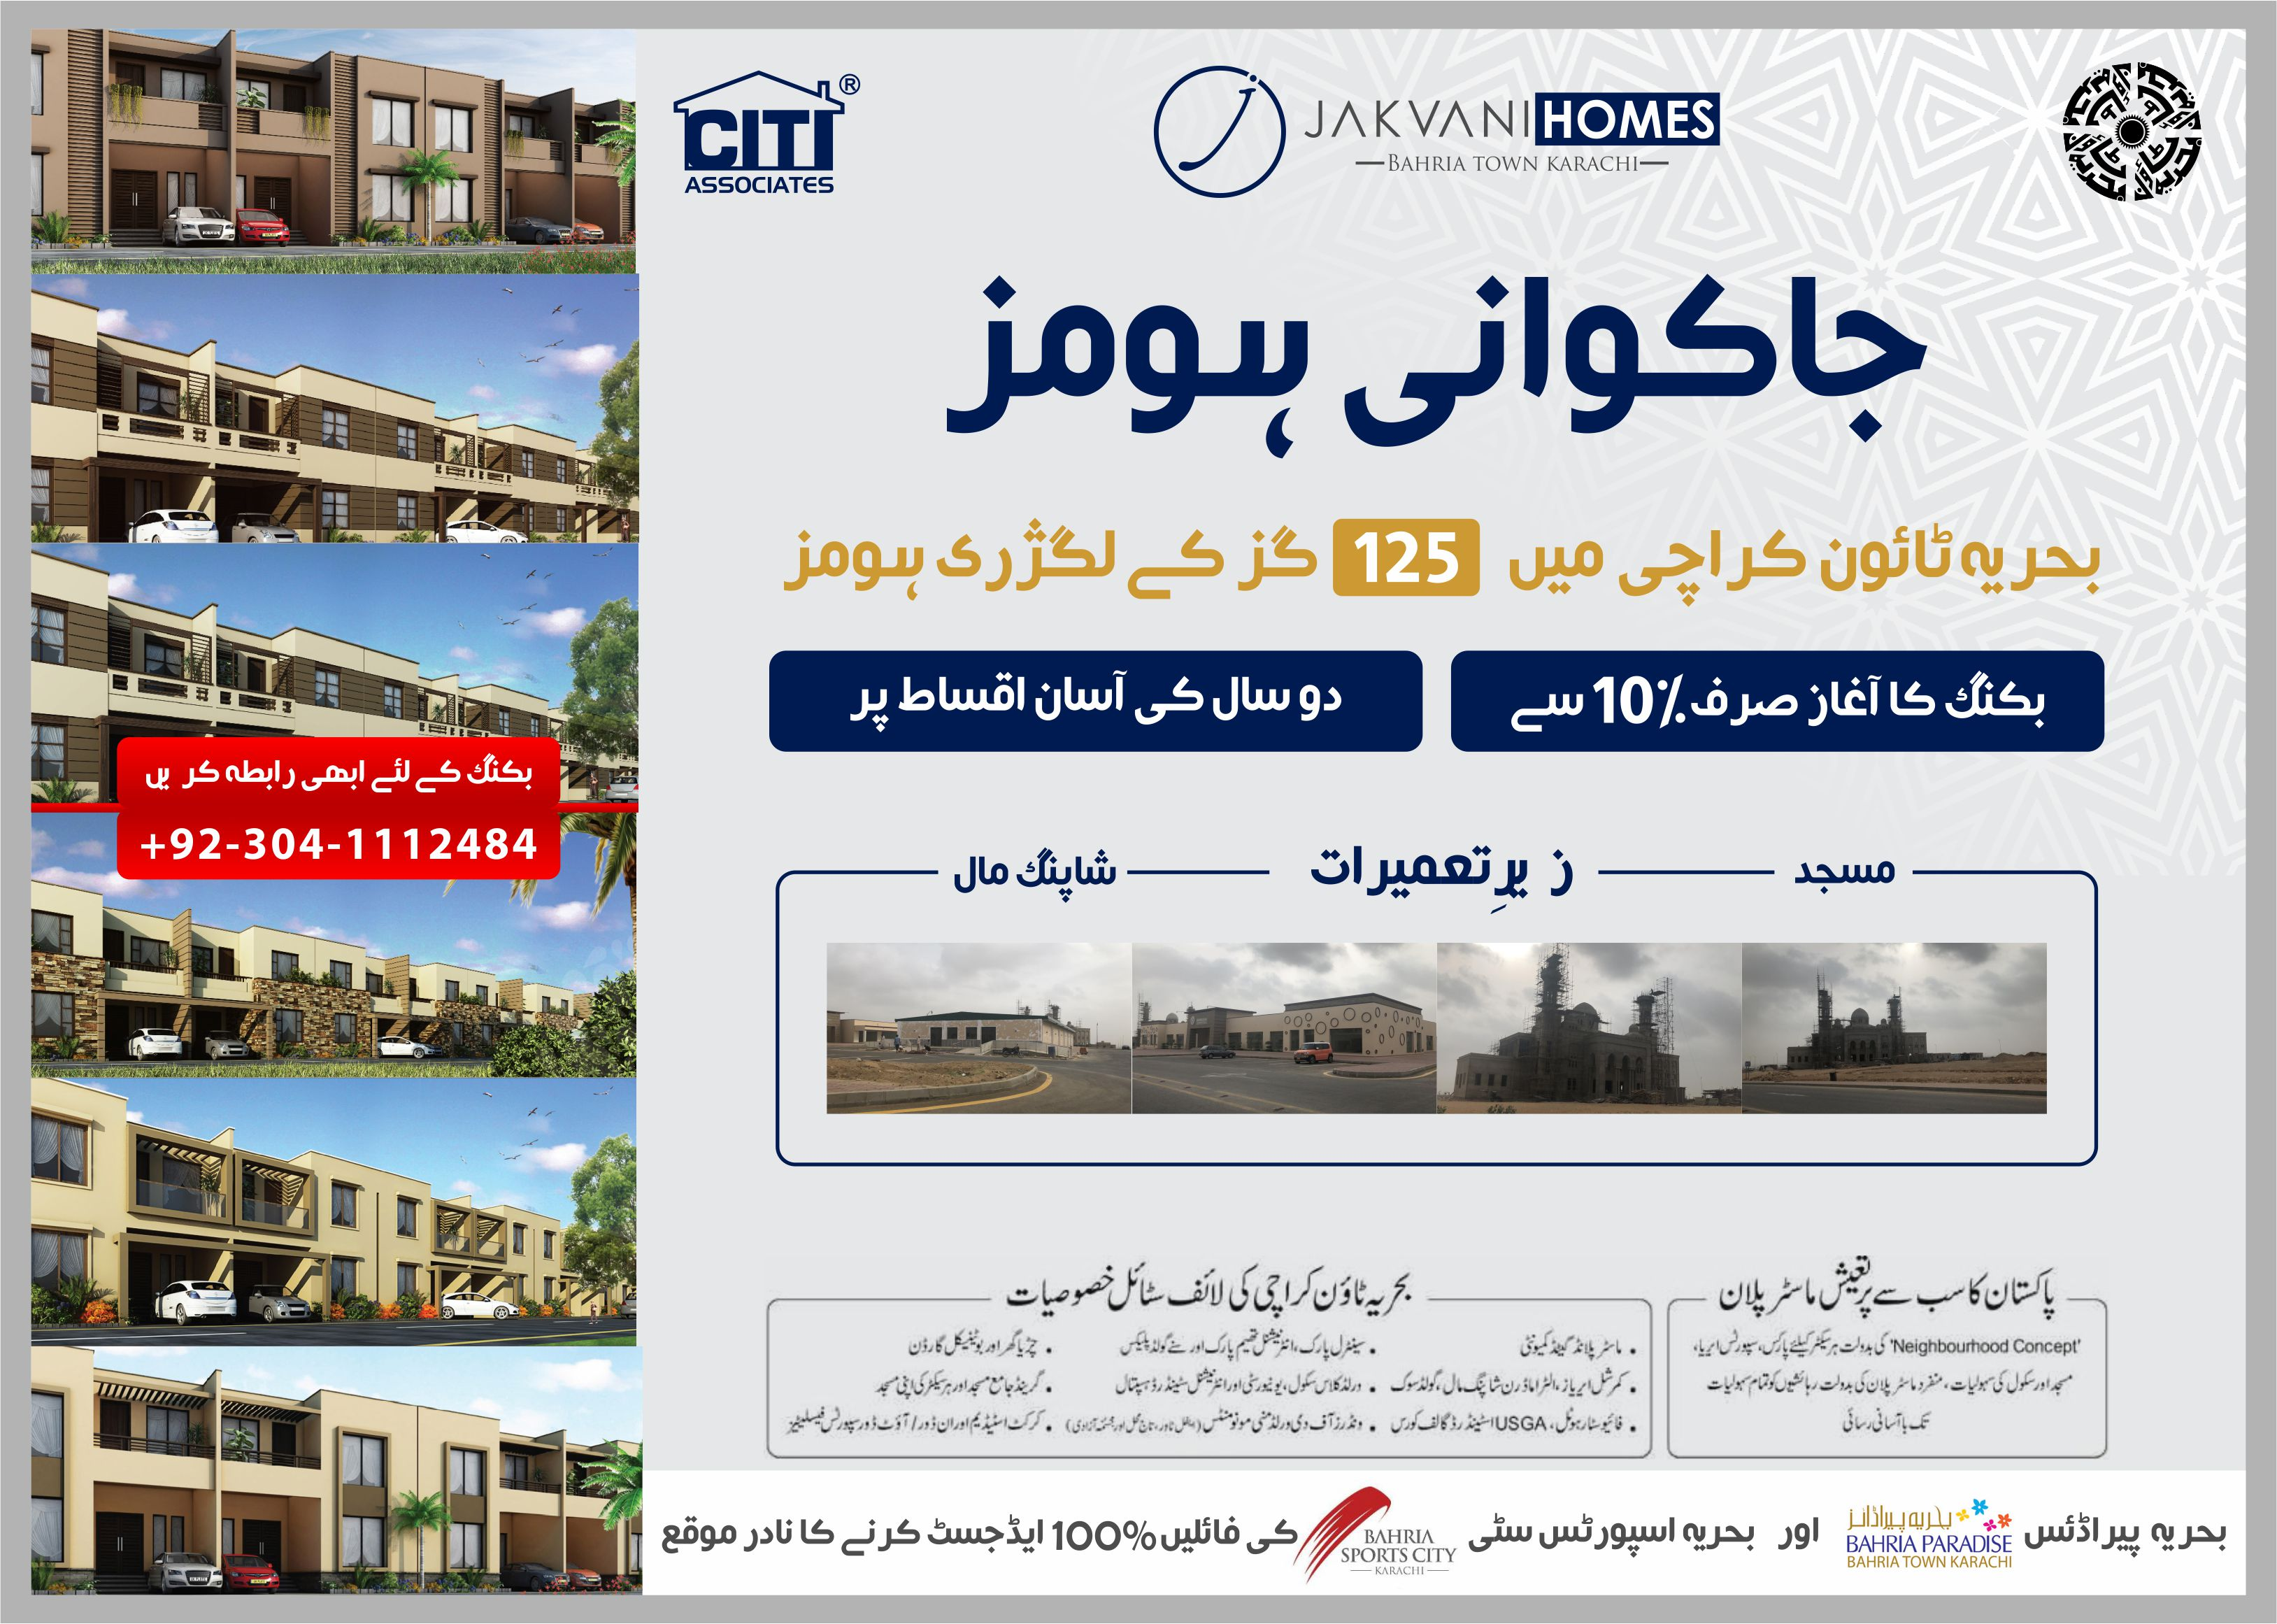 Jakvani Homes! Best Opportunity to Merge Your Files 100% (Bahria Sports City & Bahria Paradise)